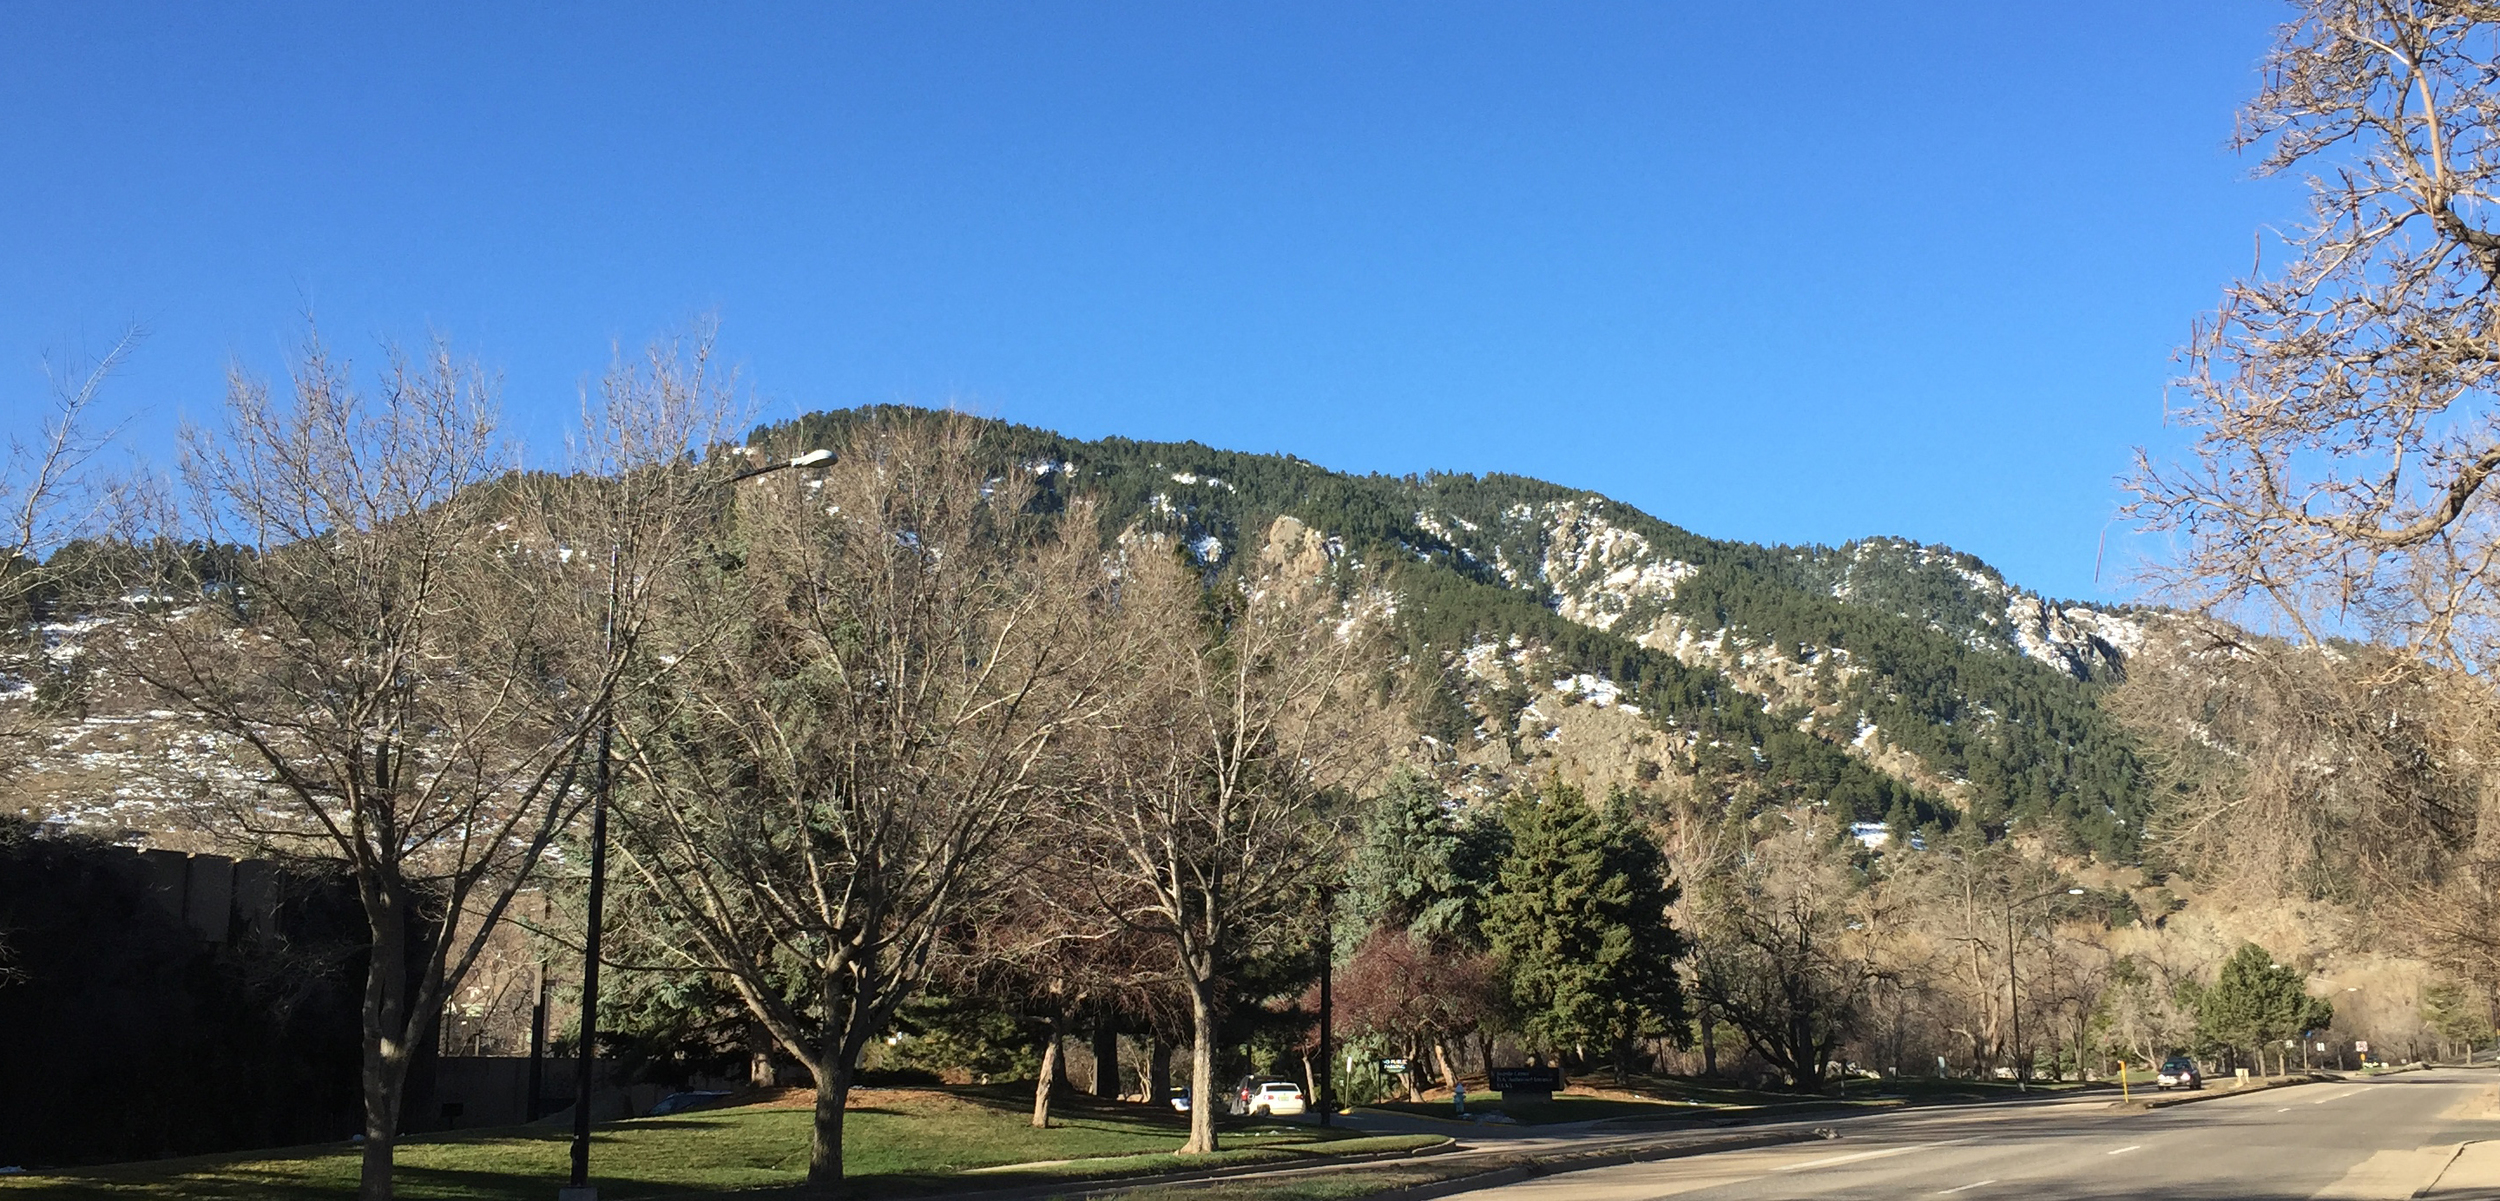 Bright morning sunshine against the Rockies in Boulder, Colorado April 1, 2016